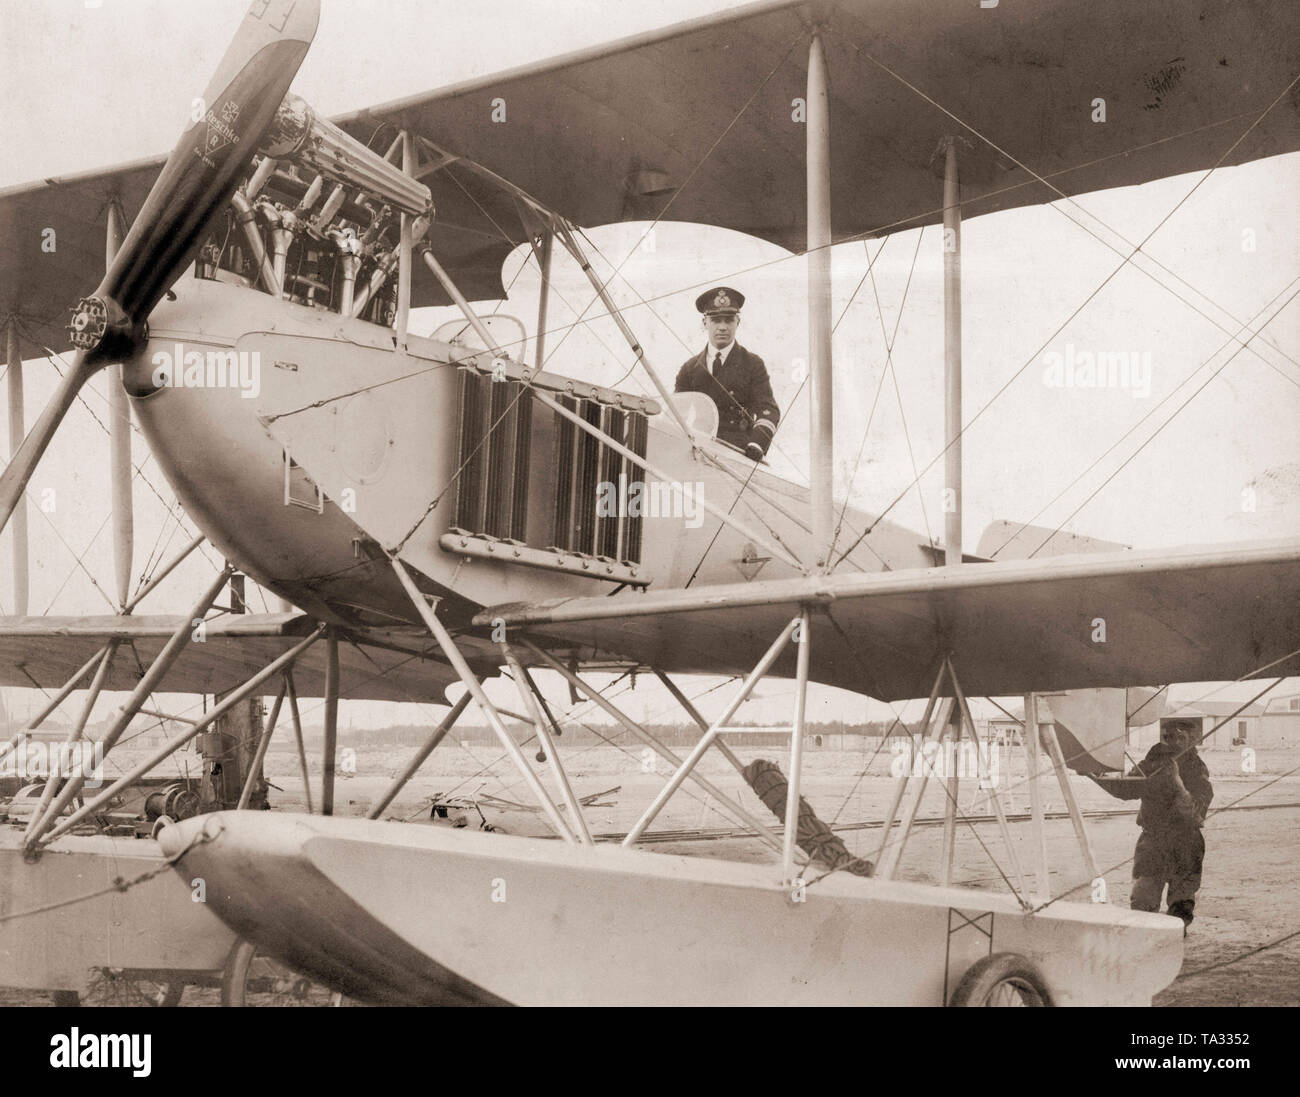 The 'Flieger von Tsingtau' (Aviator from Tsingtau) - Guenther Plueschow in his double decker. - Stock Image